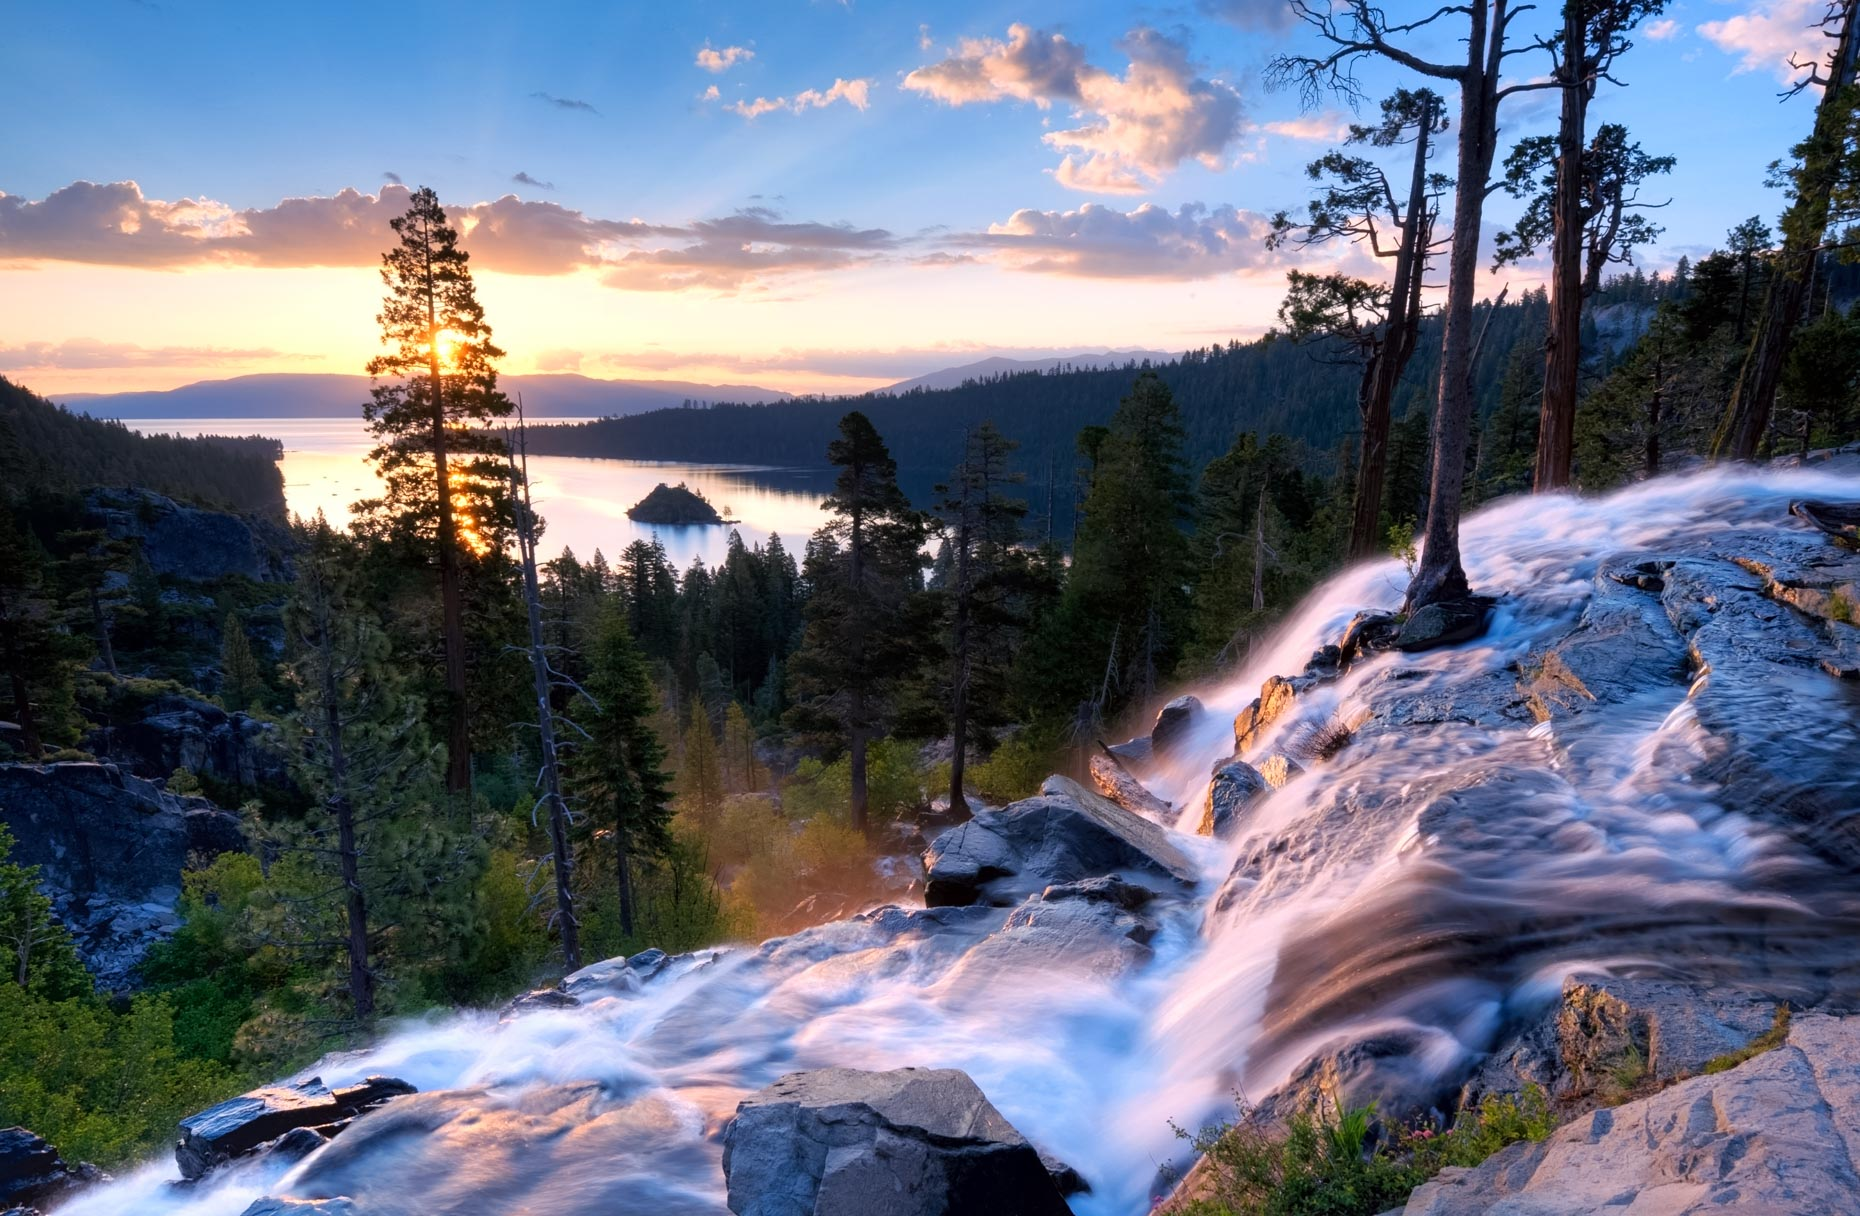 Sunrise Over Eagle Falls And Emerald Bay - South Lake Tahoe, California